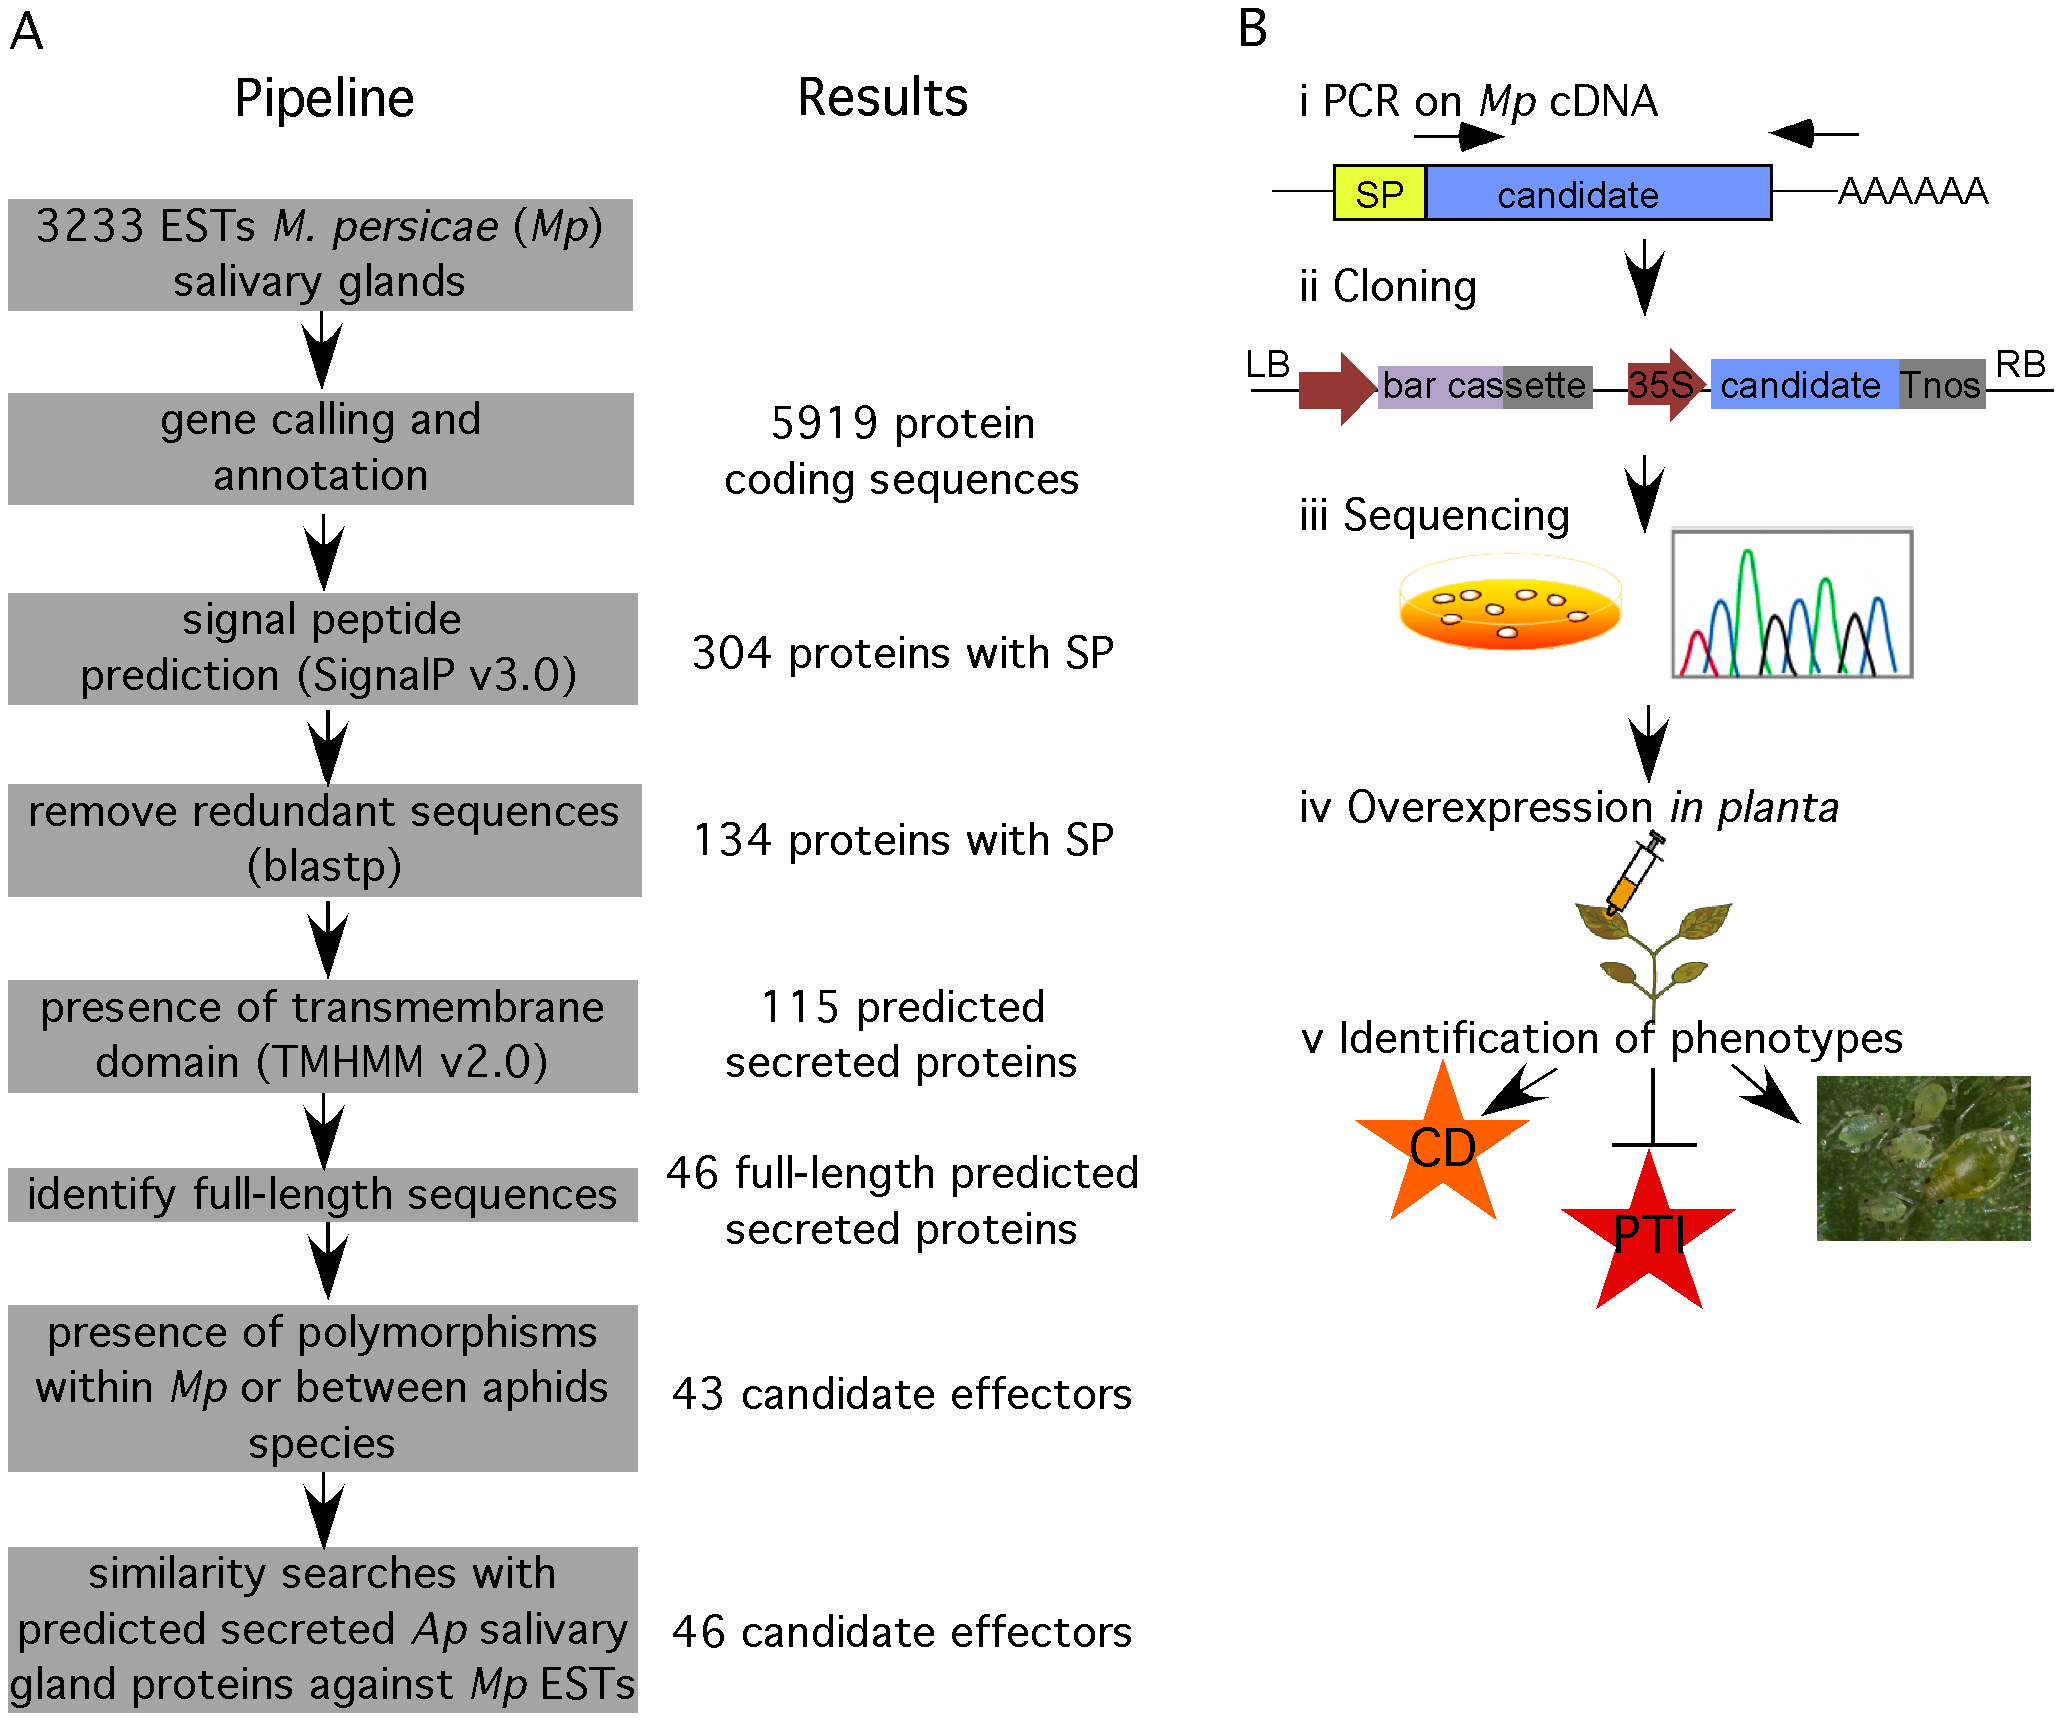 Overview of functional genomics pipeline to identify candidate effectors from <i>M. persicae</i>.